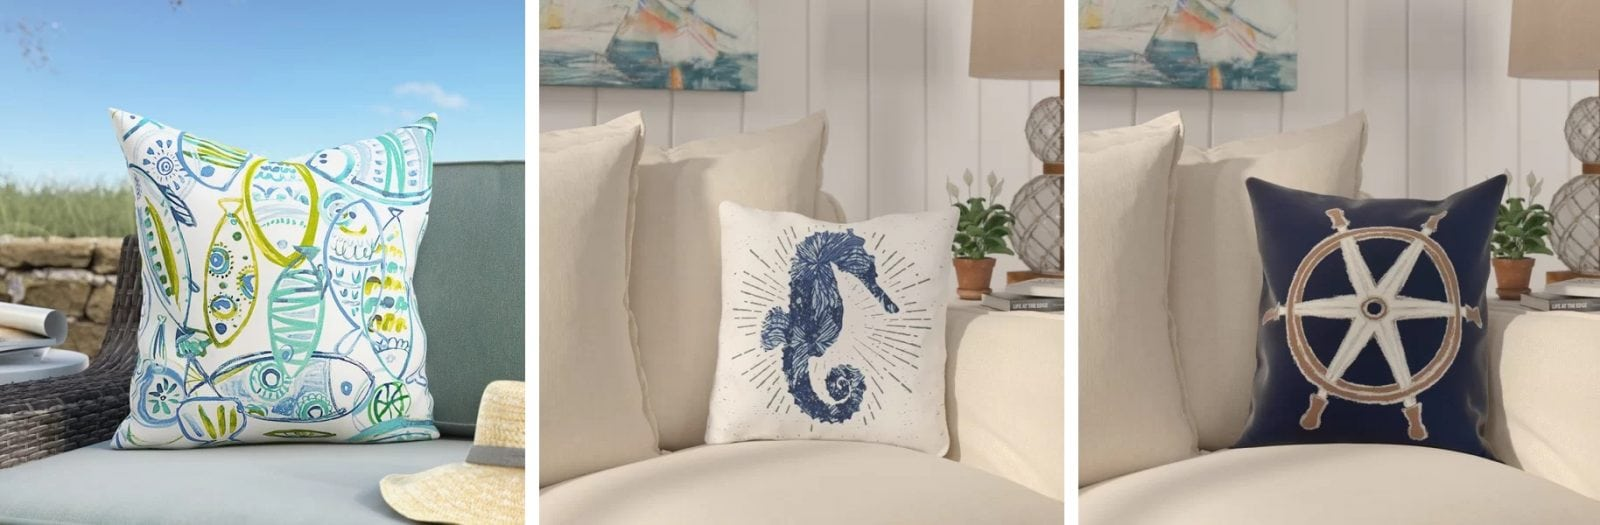 Nautical Pillows and Nautical Throw Pillows